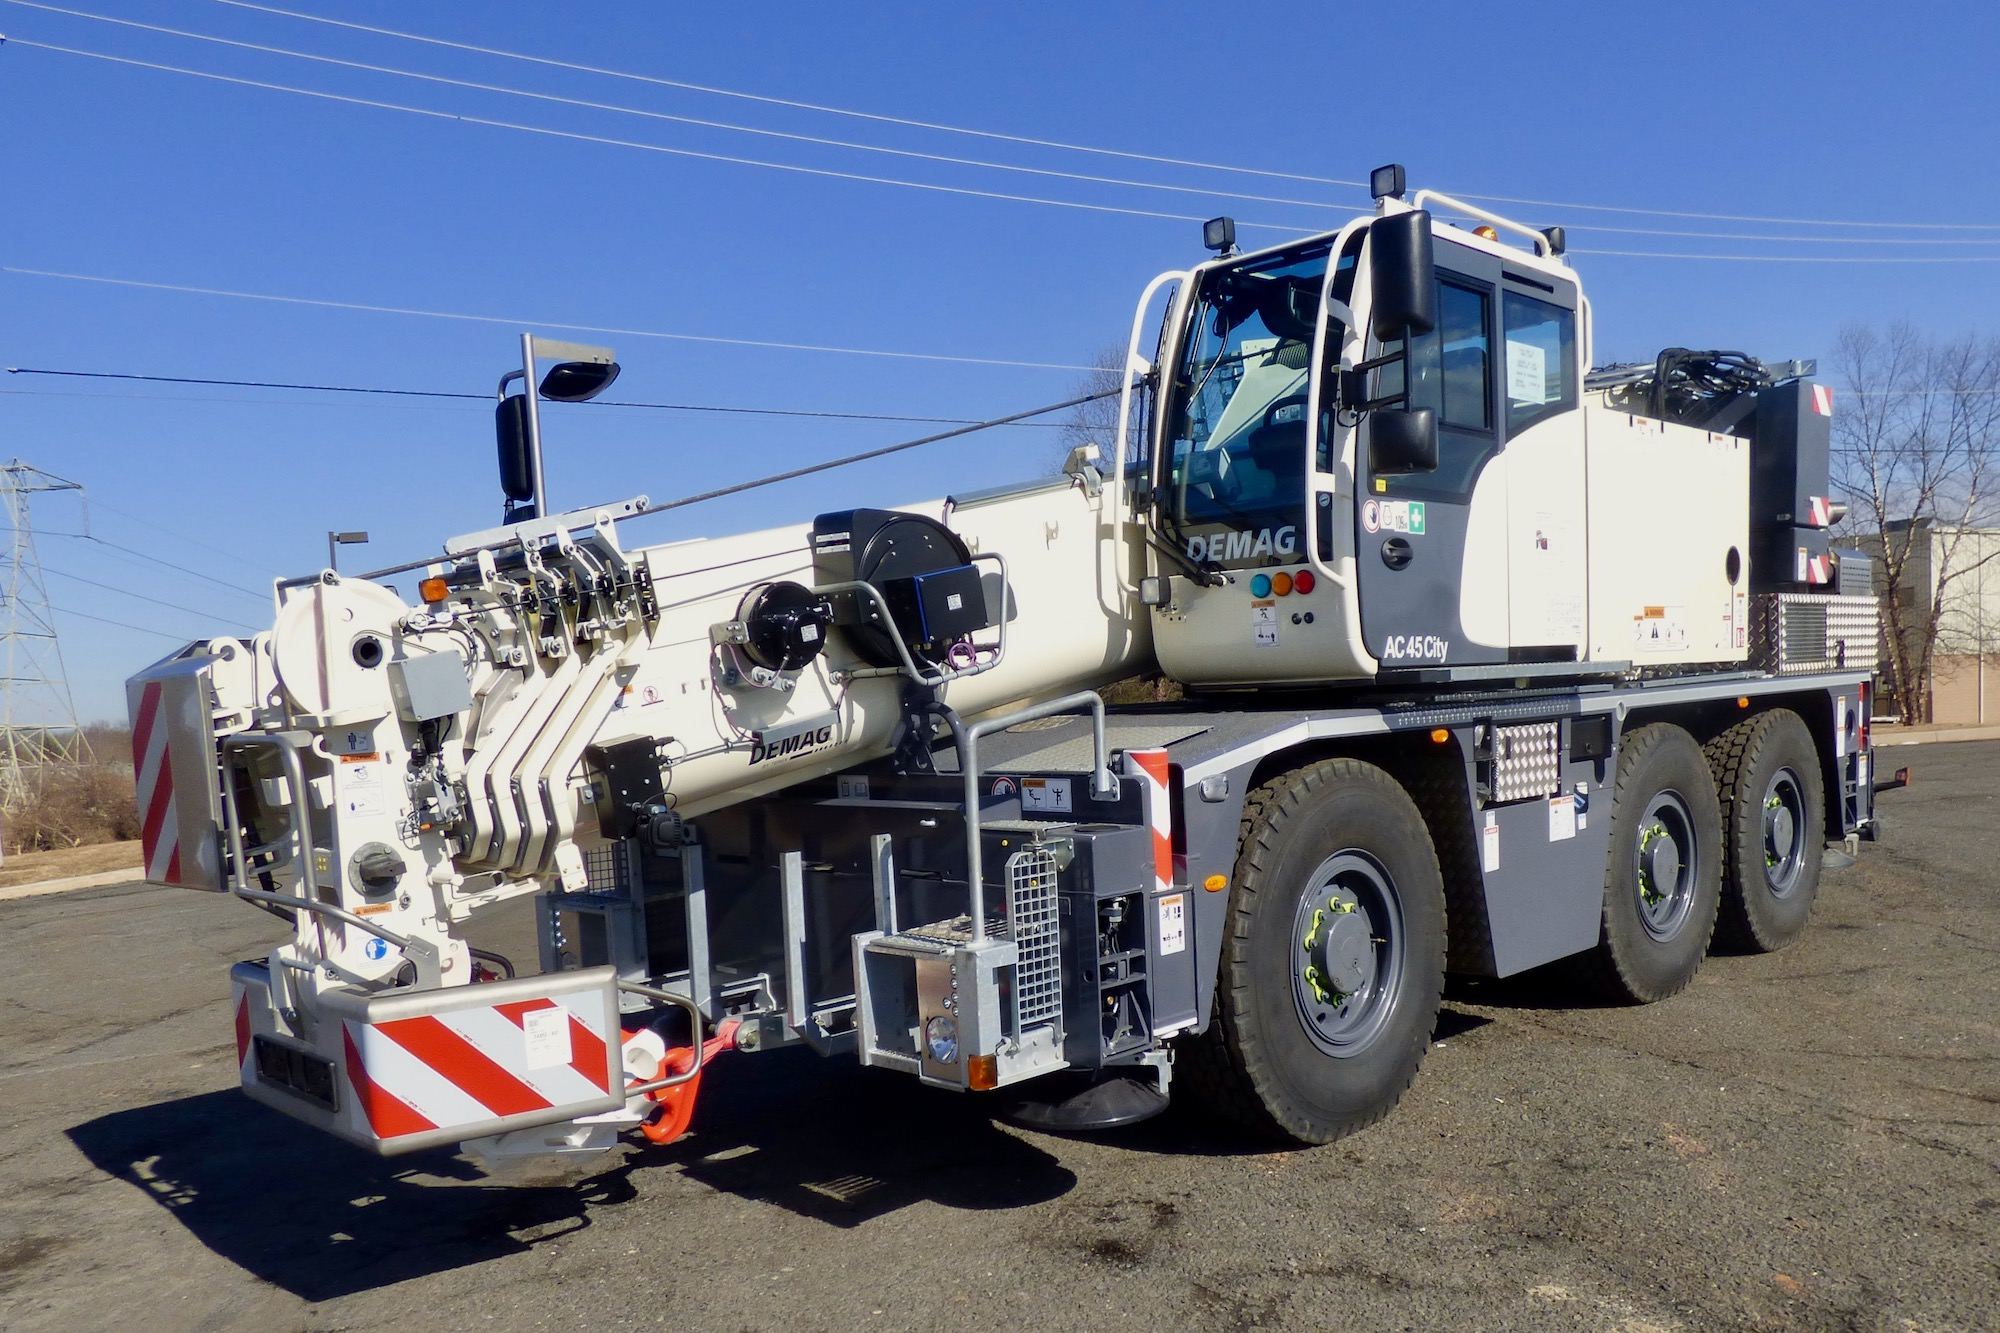 Demag AC 45 City crane